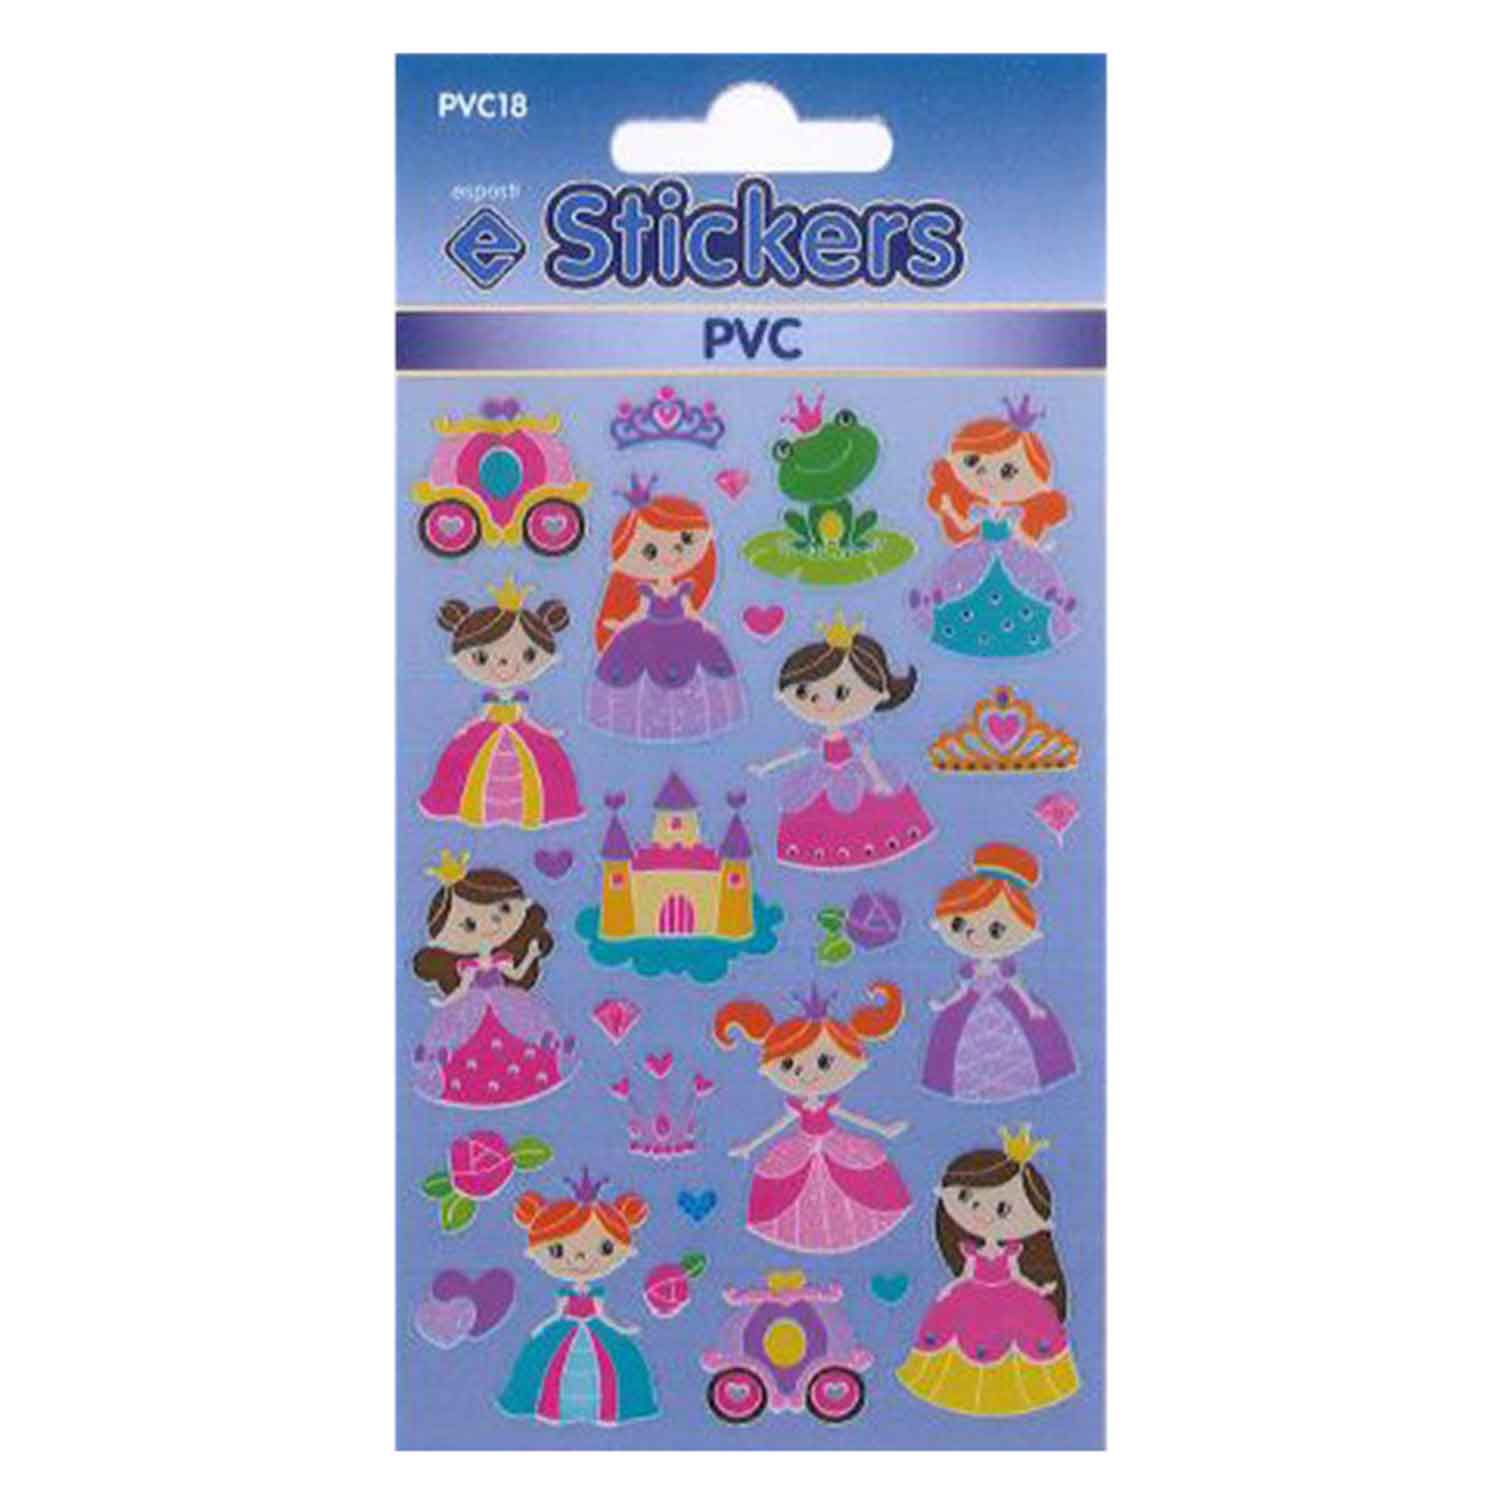 Esposti PVC Princess Self Adhesive Novelty Stickers - Pack of 10